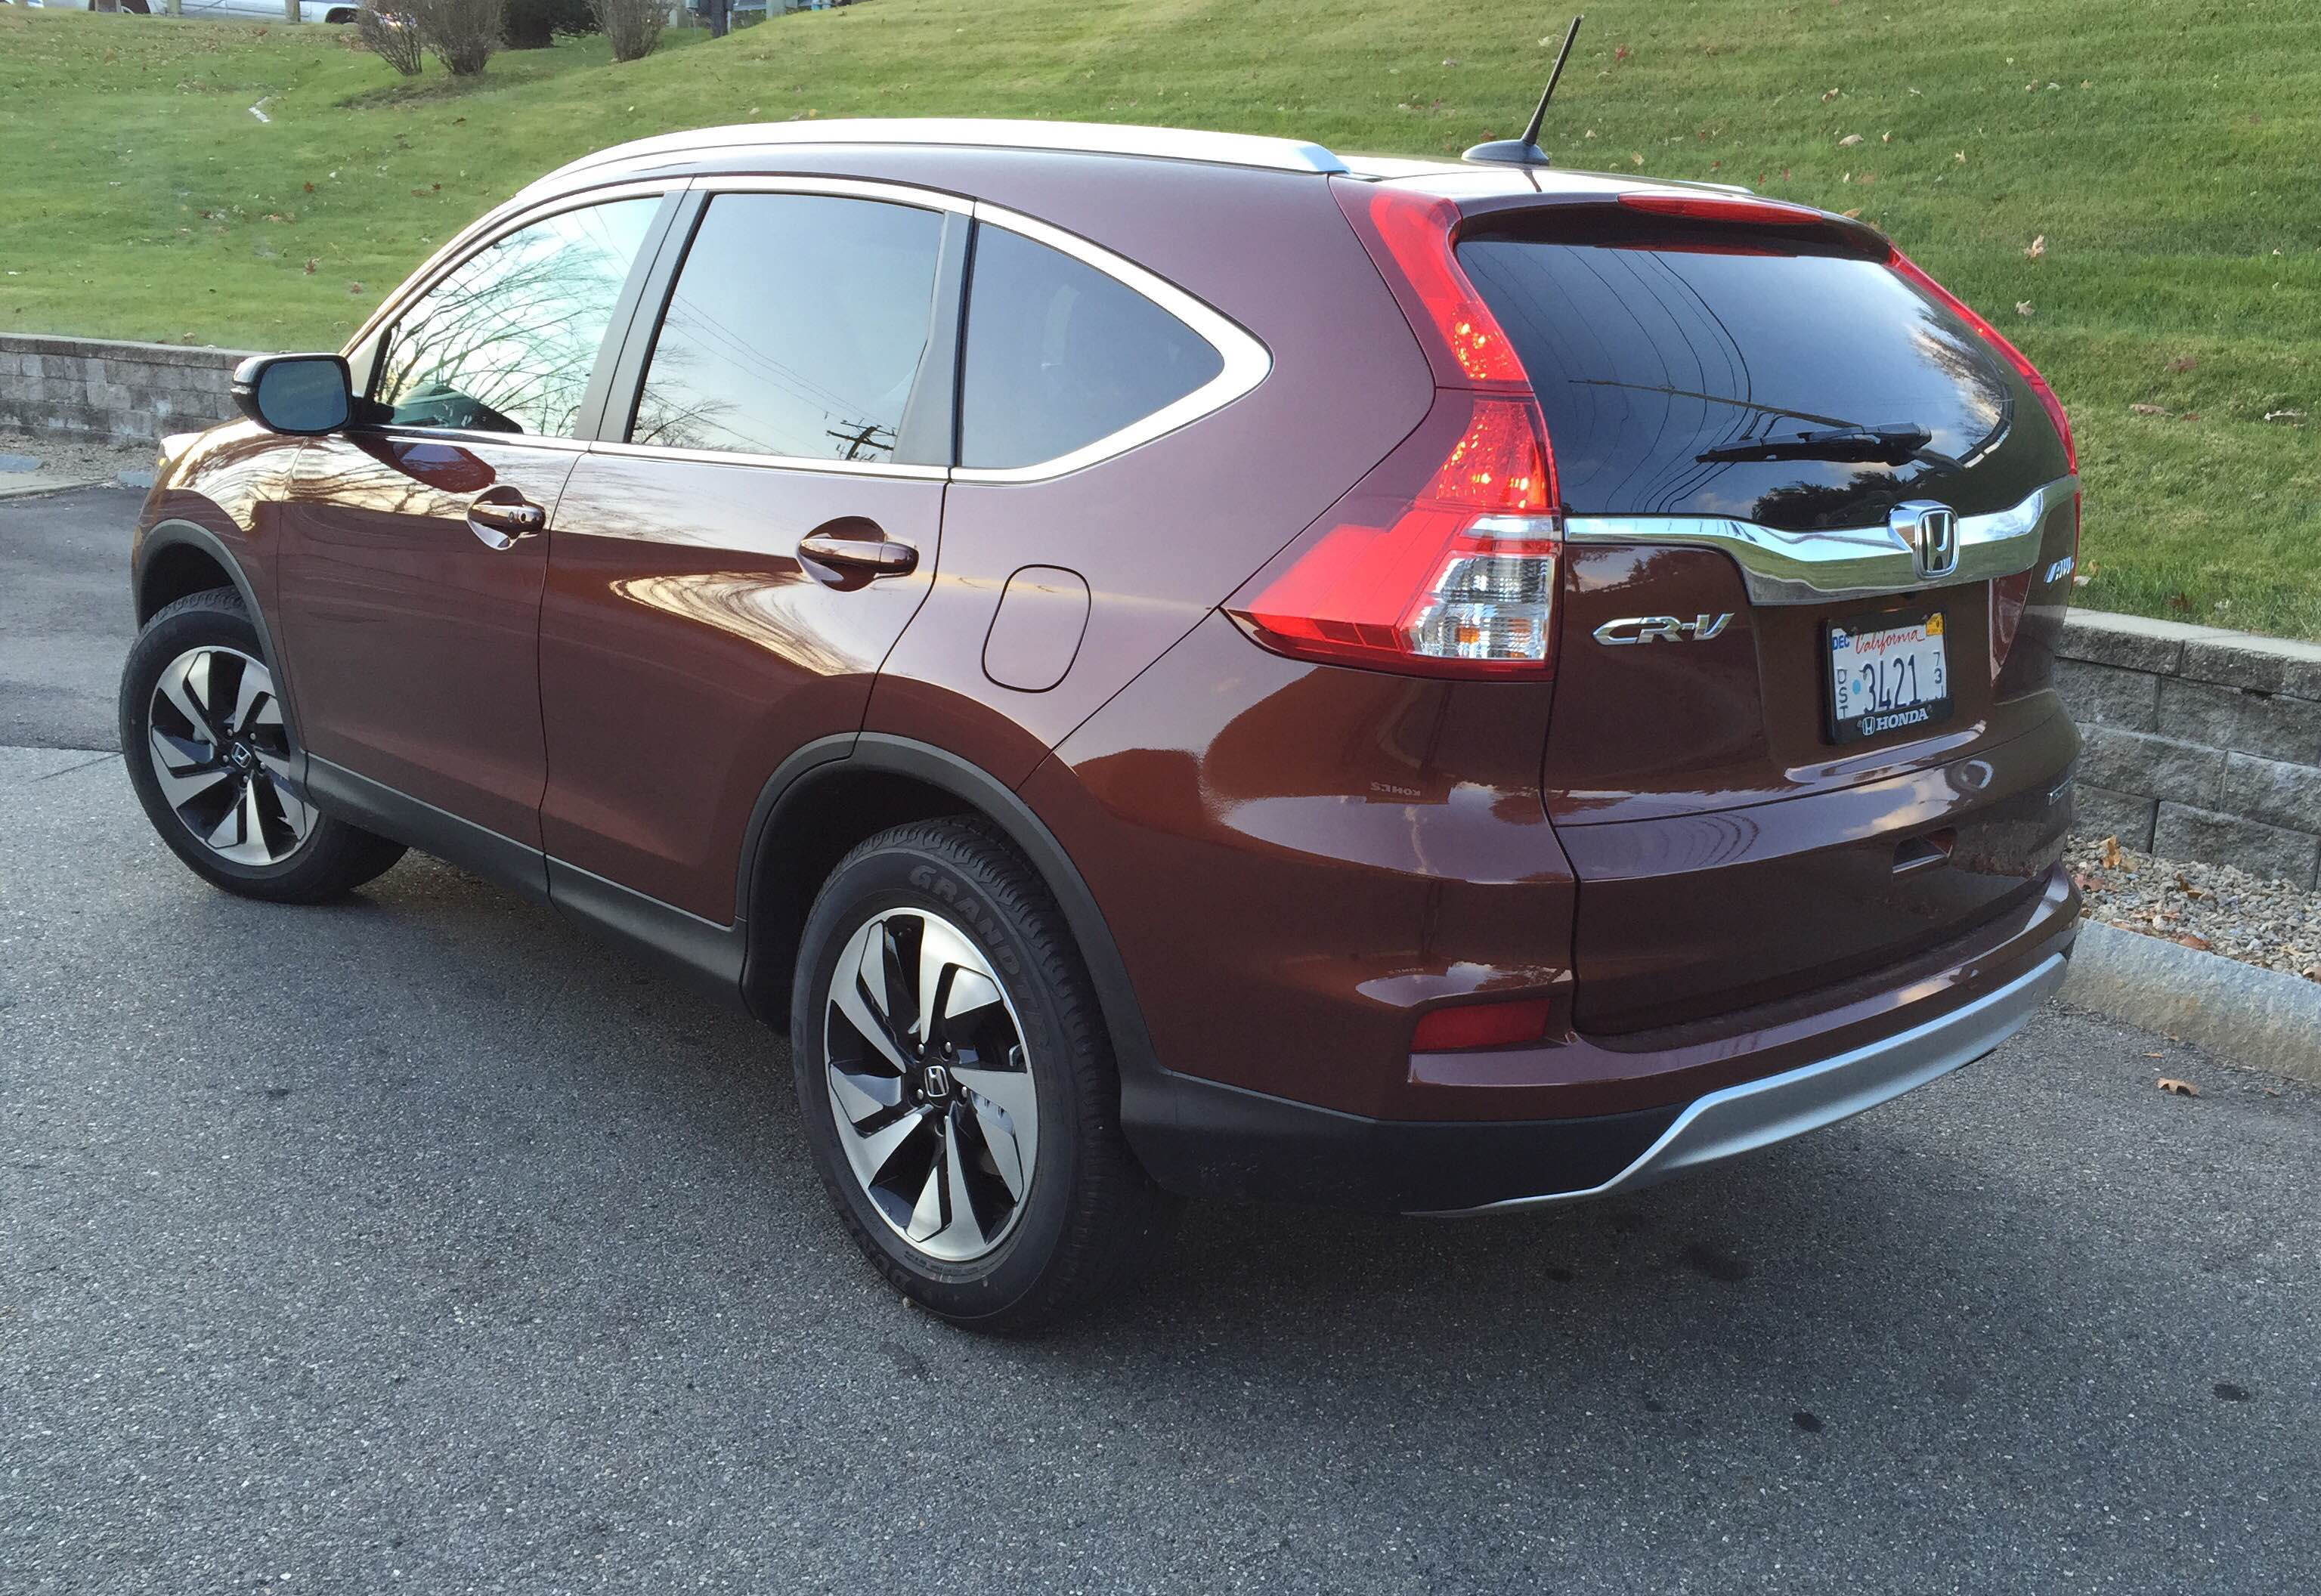 2015 Honda CR-V Rear Quarter